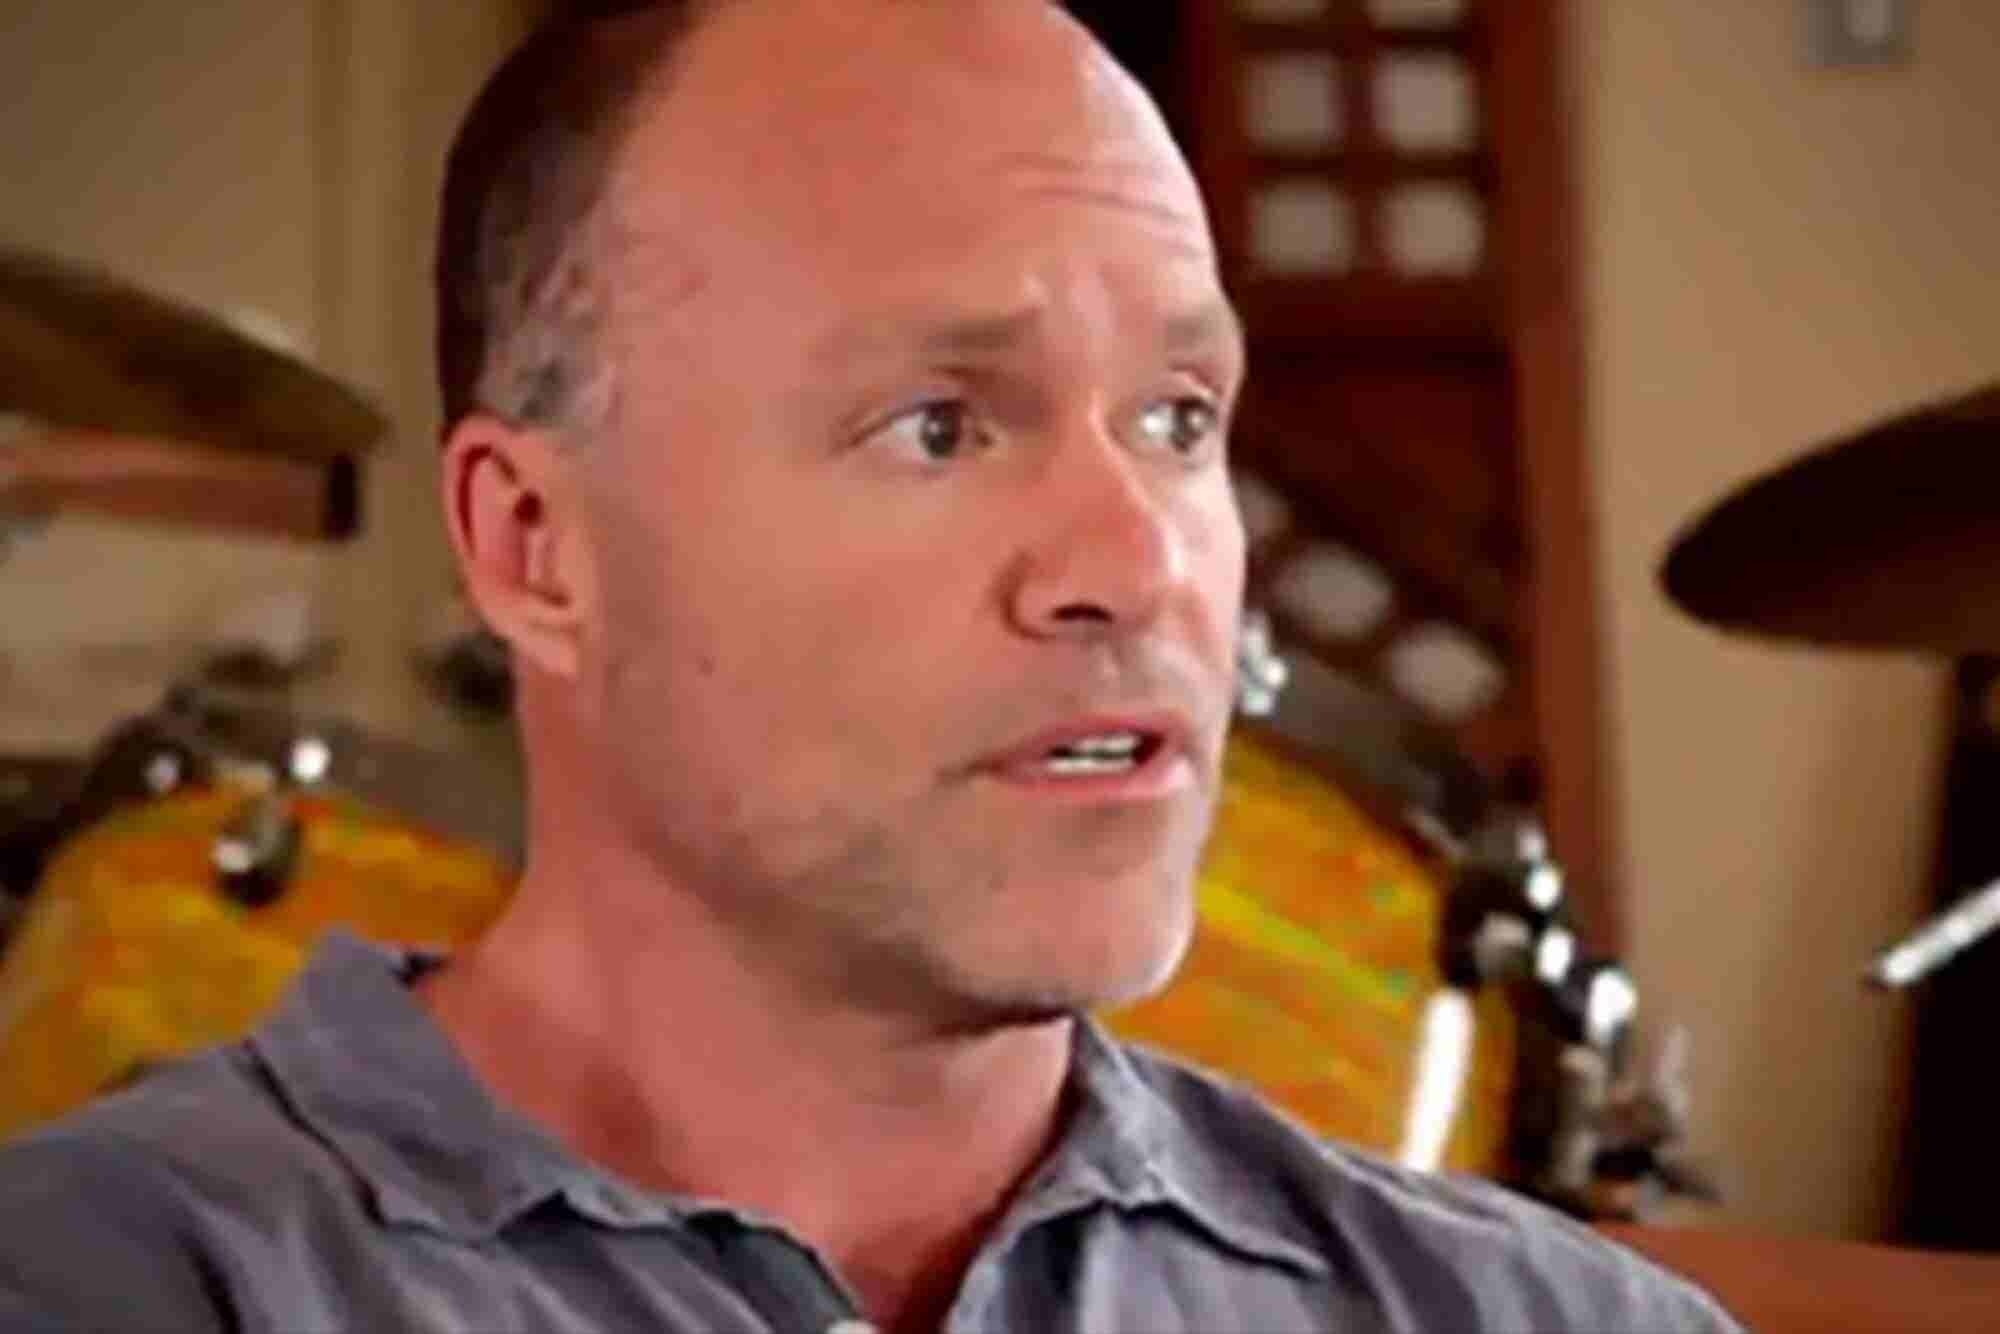 HomeAway Co-founder on Making Acquisitions